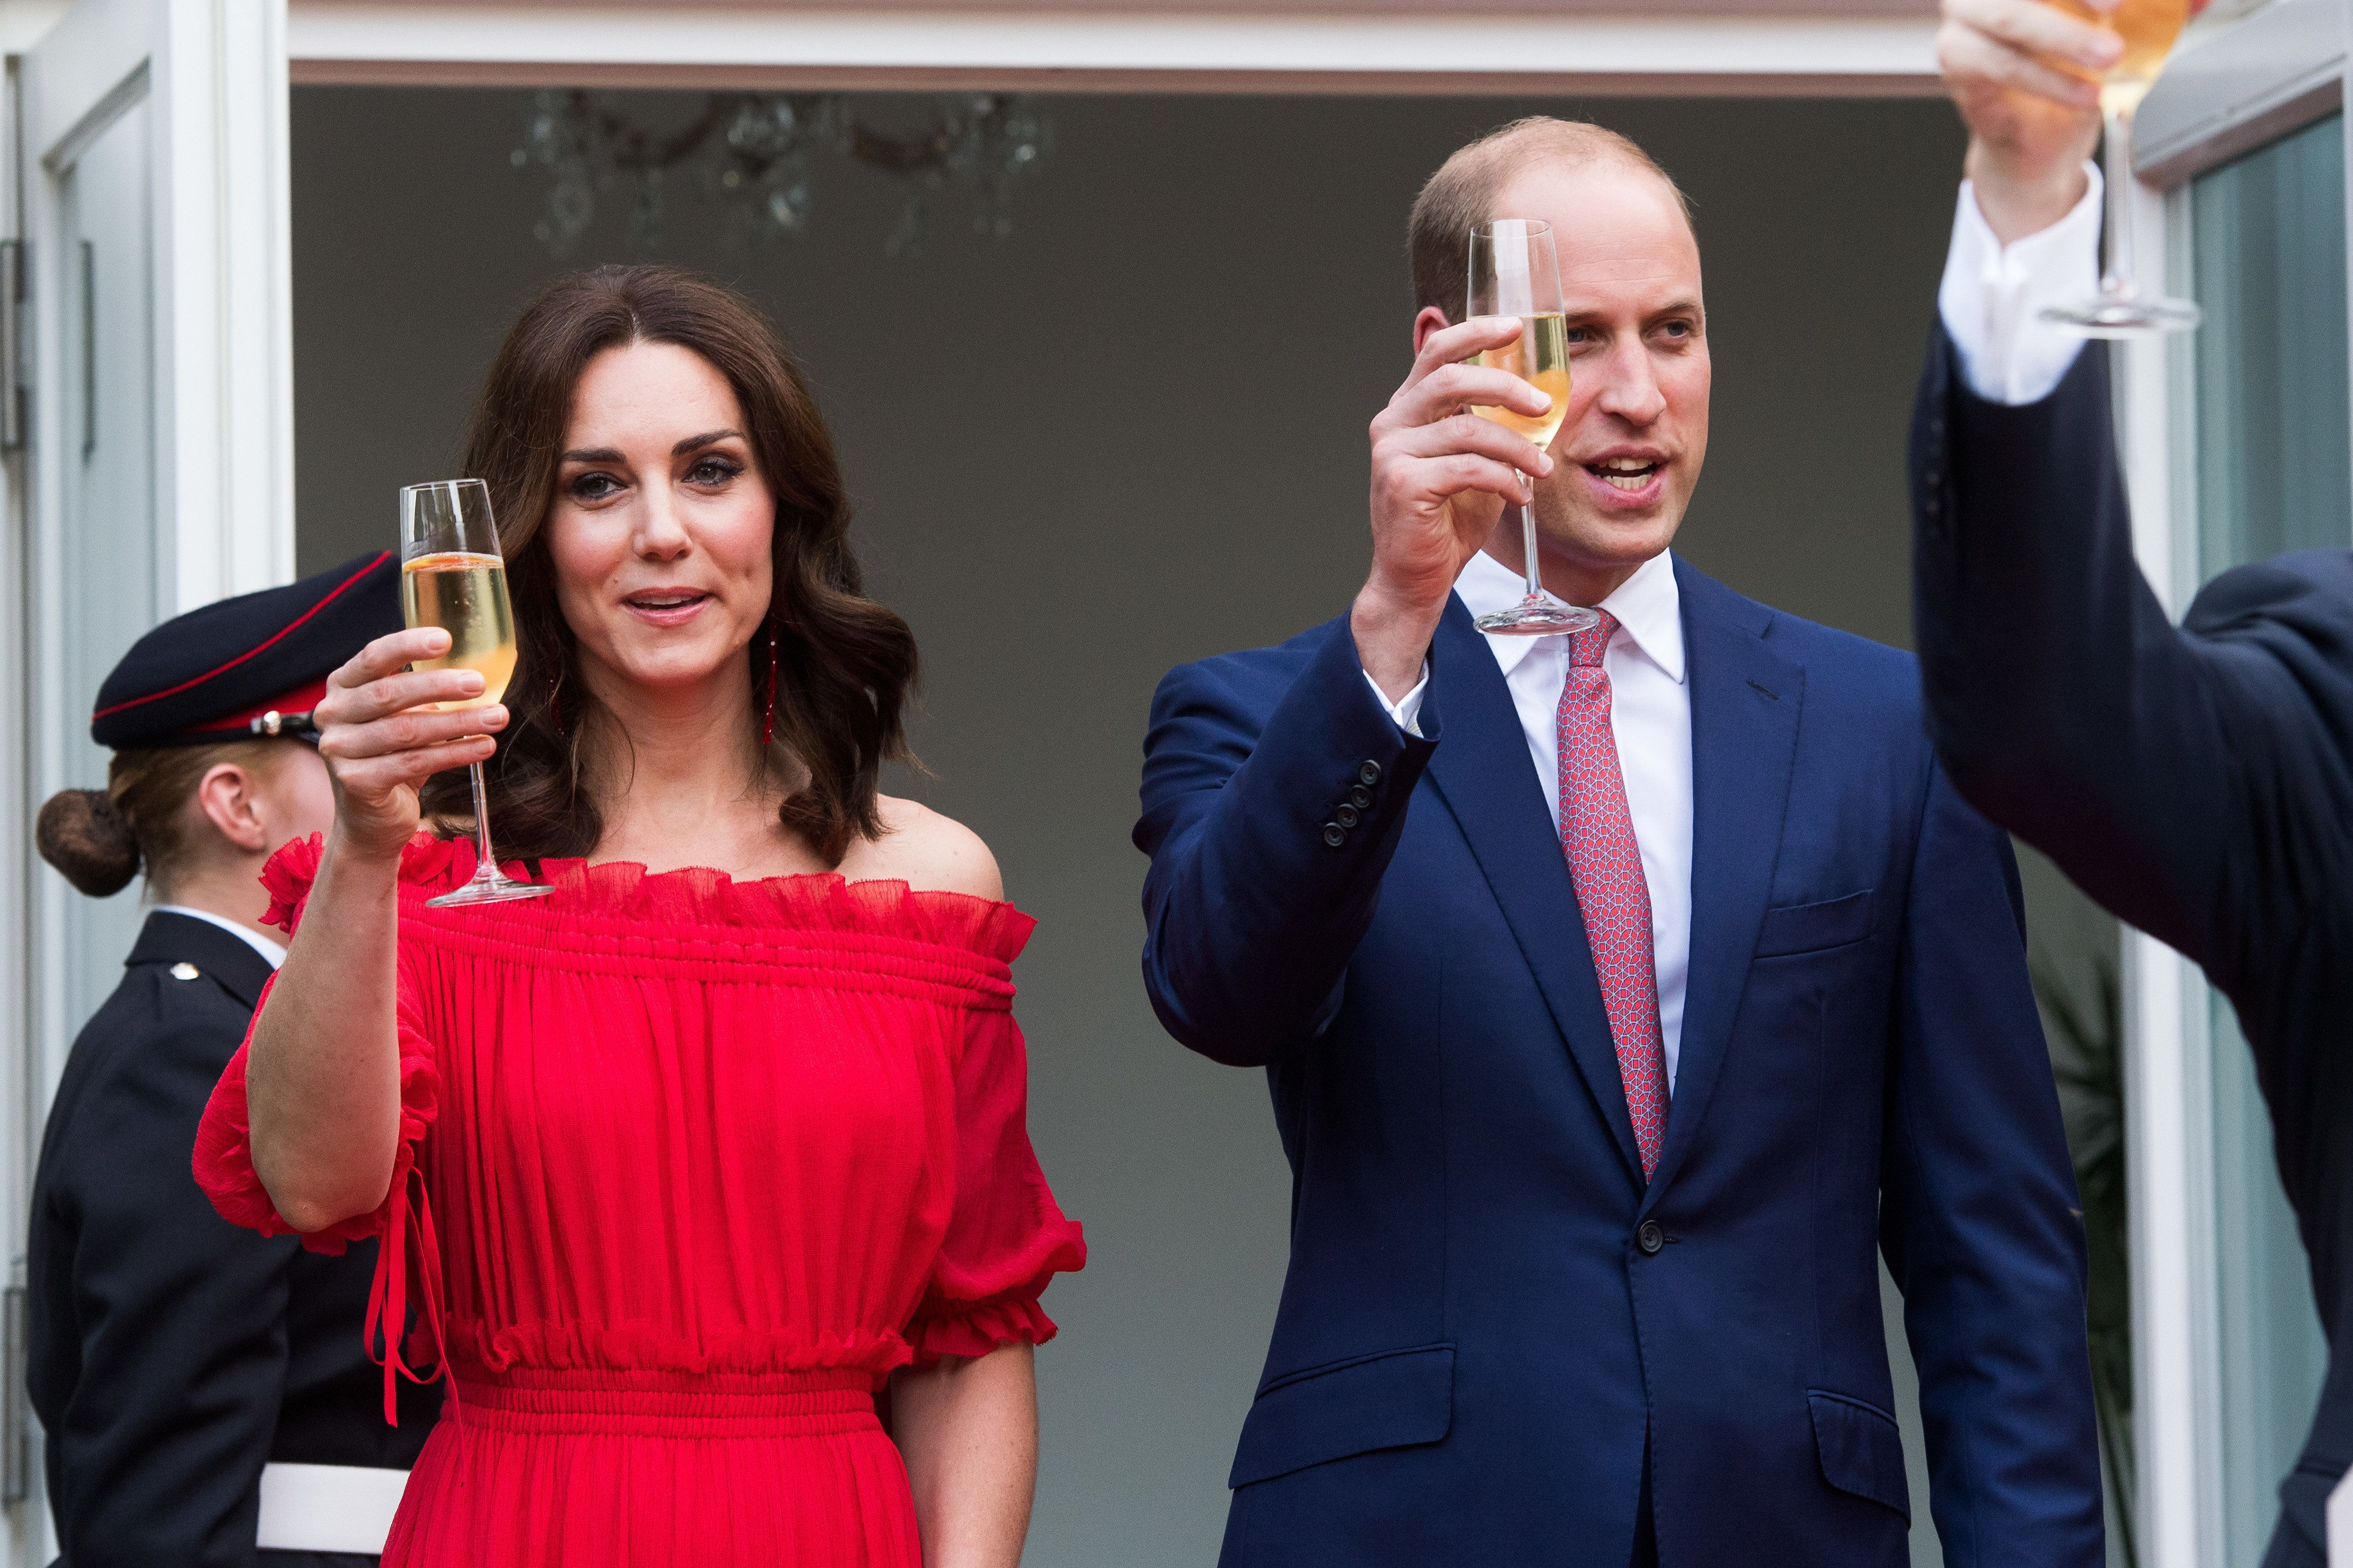 BERLIN, GERMANY - JULY 19:  Prince William, Duke of Cambridge and Catherine, Duchess of Cambridge attend The Queen's Birthday Party at the British Ambassadorial Residence on the first day of their visit to Germany on July 19, 2017 in Berlin, Germany. The royal couple are on a three-day trip to Germany that includes visits to Berlin, Hamburg and Heidelberg.  (Photo by Matthias Nareyek - Pool/Getty Images)